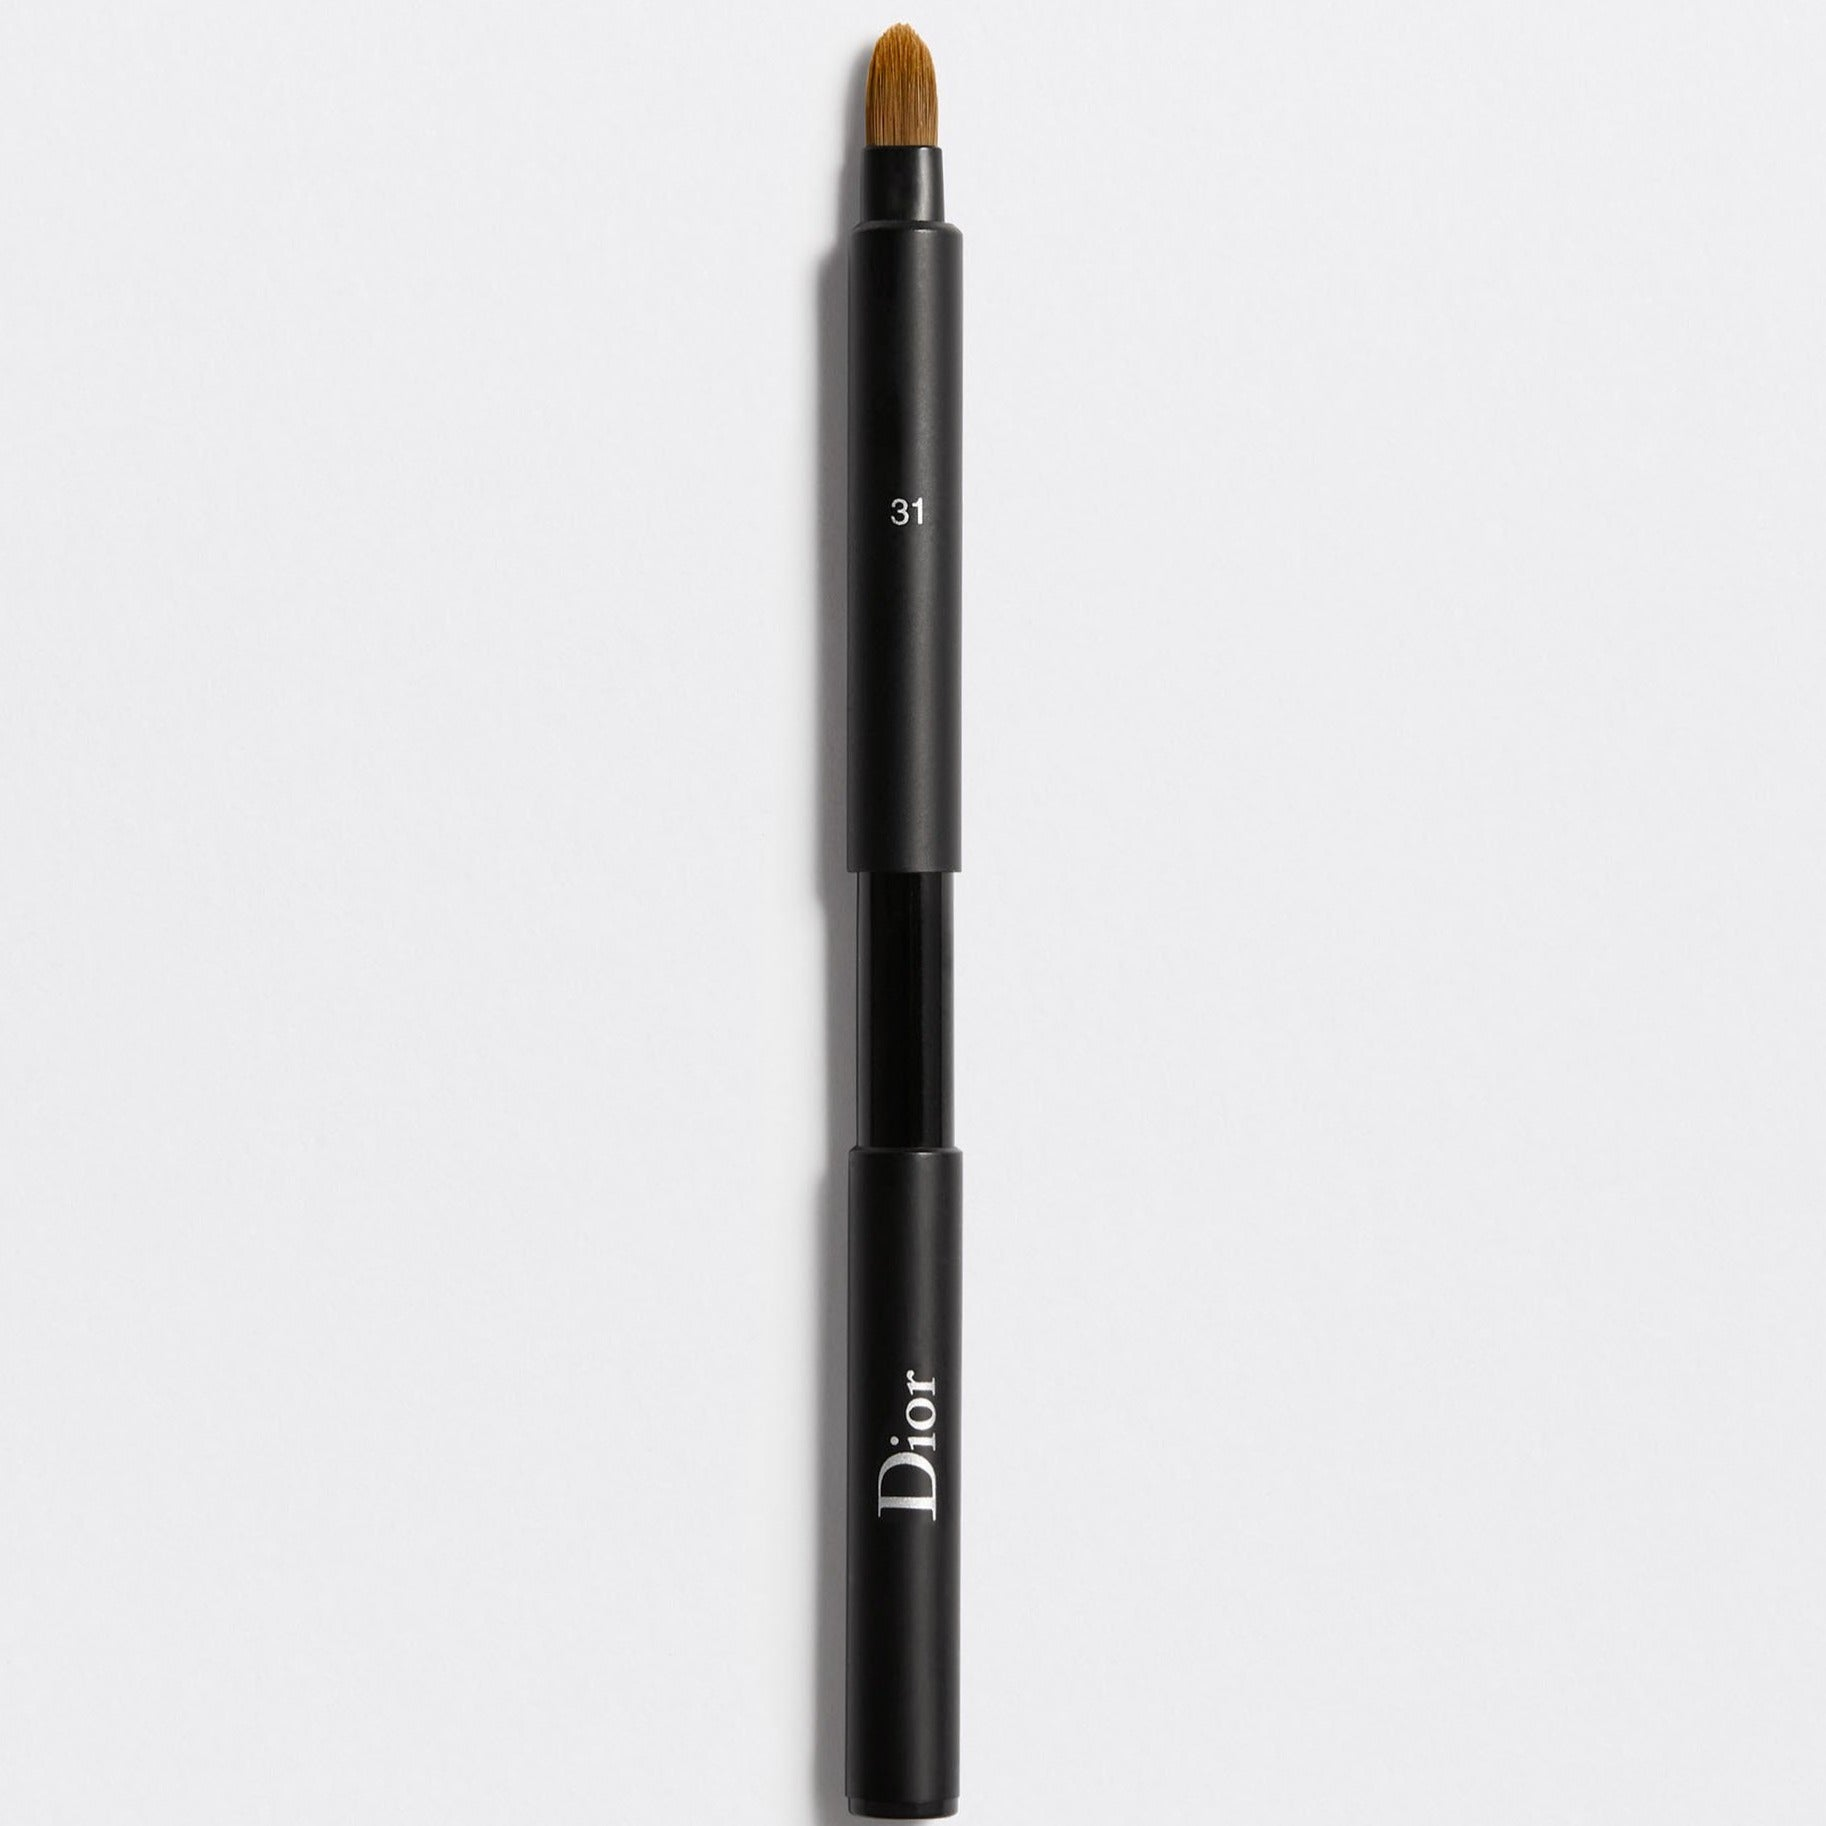 DIOR BACKSTAGE RETRACTABLE LIP BRUSH N° 31 | Dior backstage retractable lip brush n°31